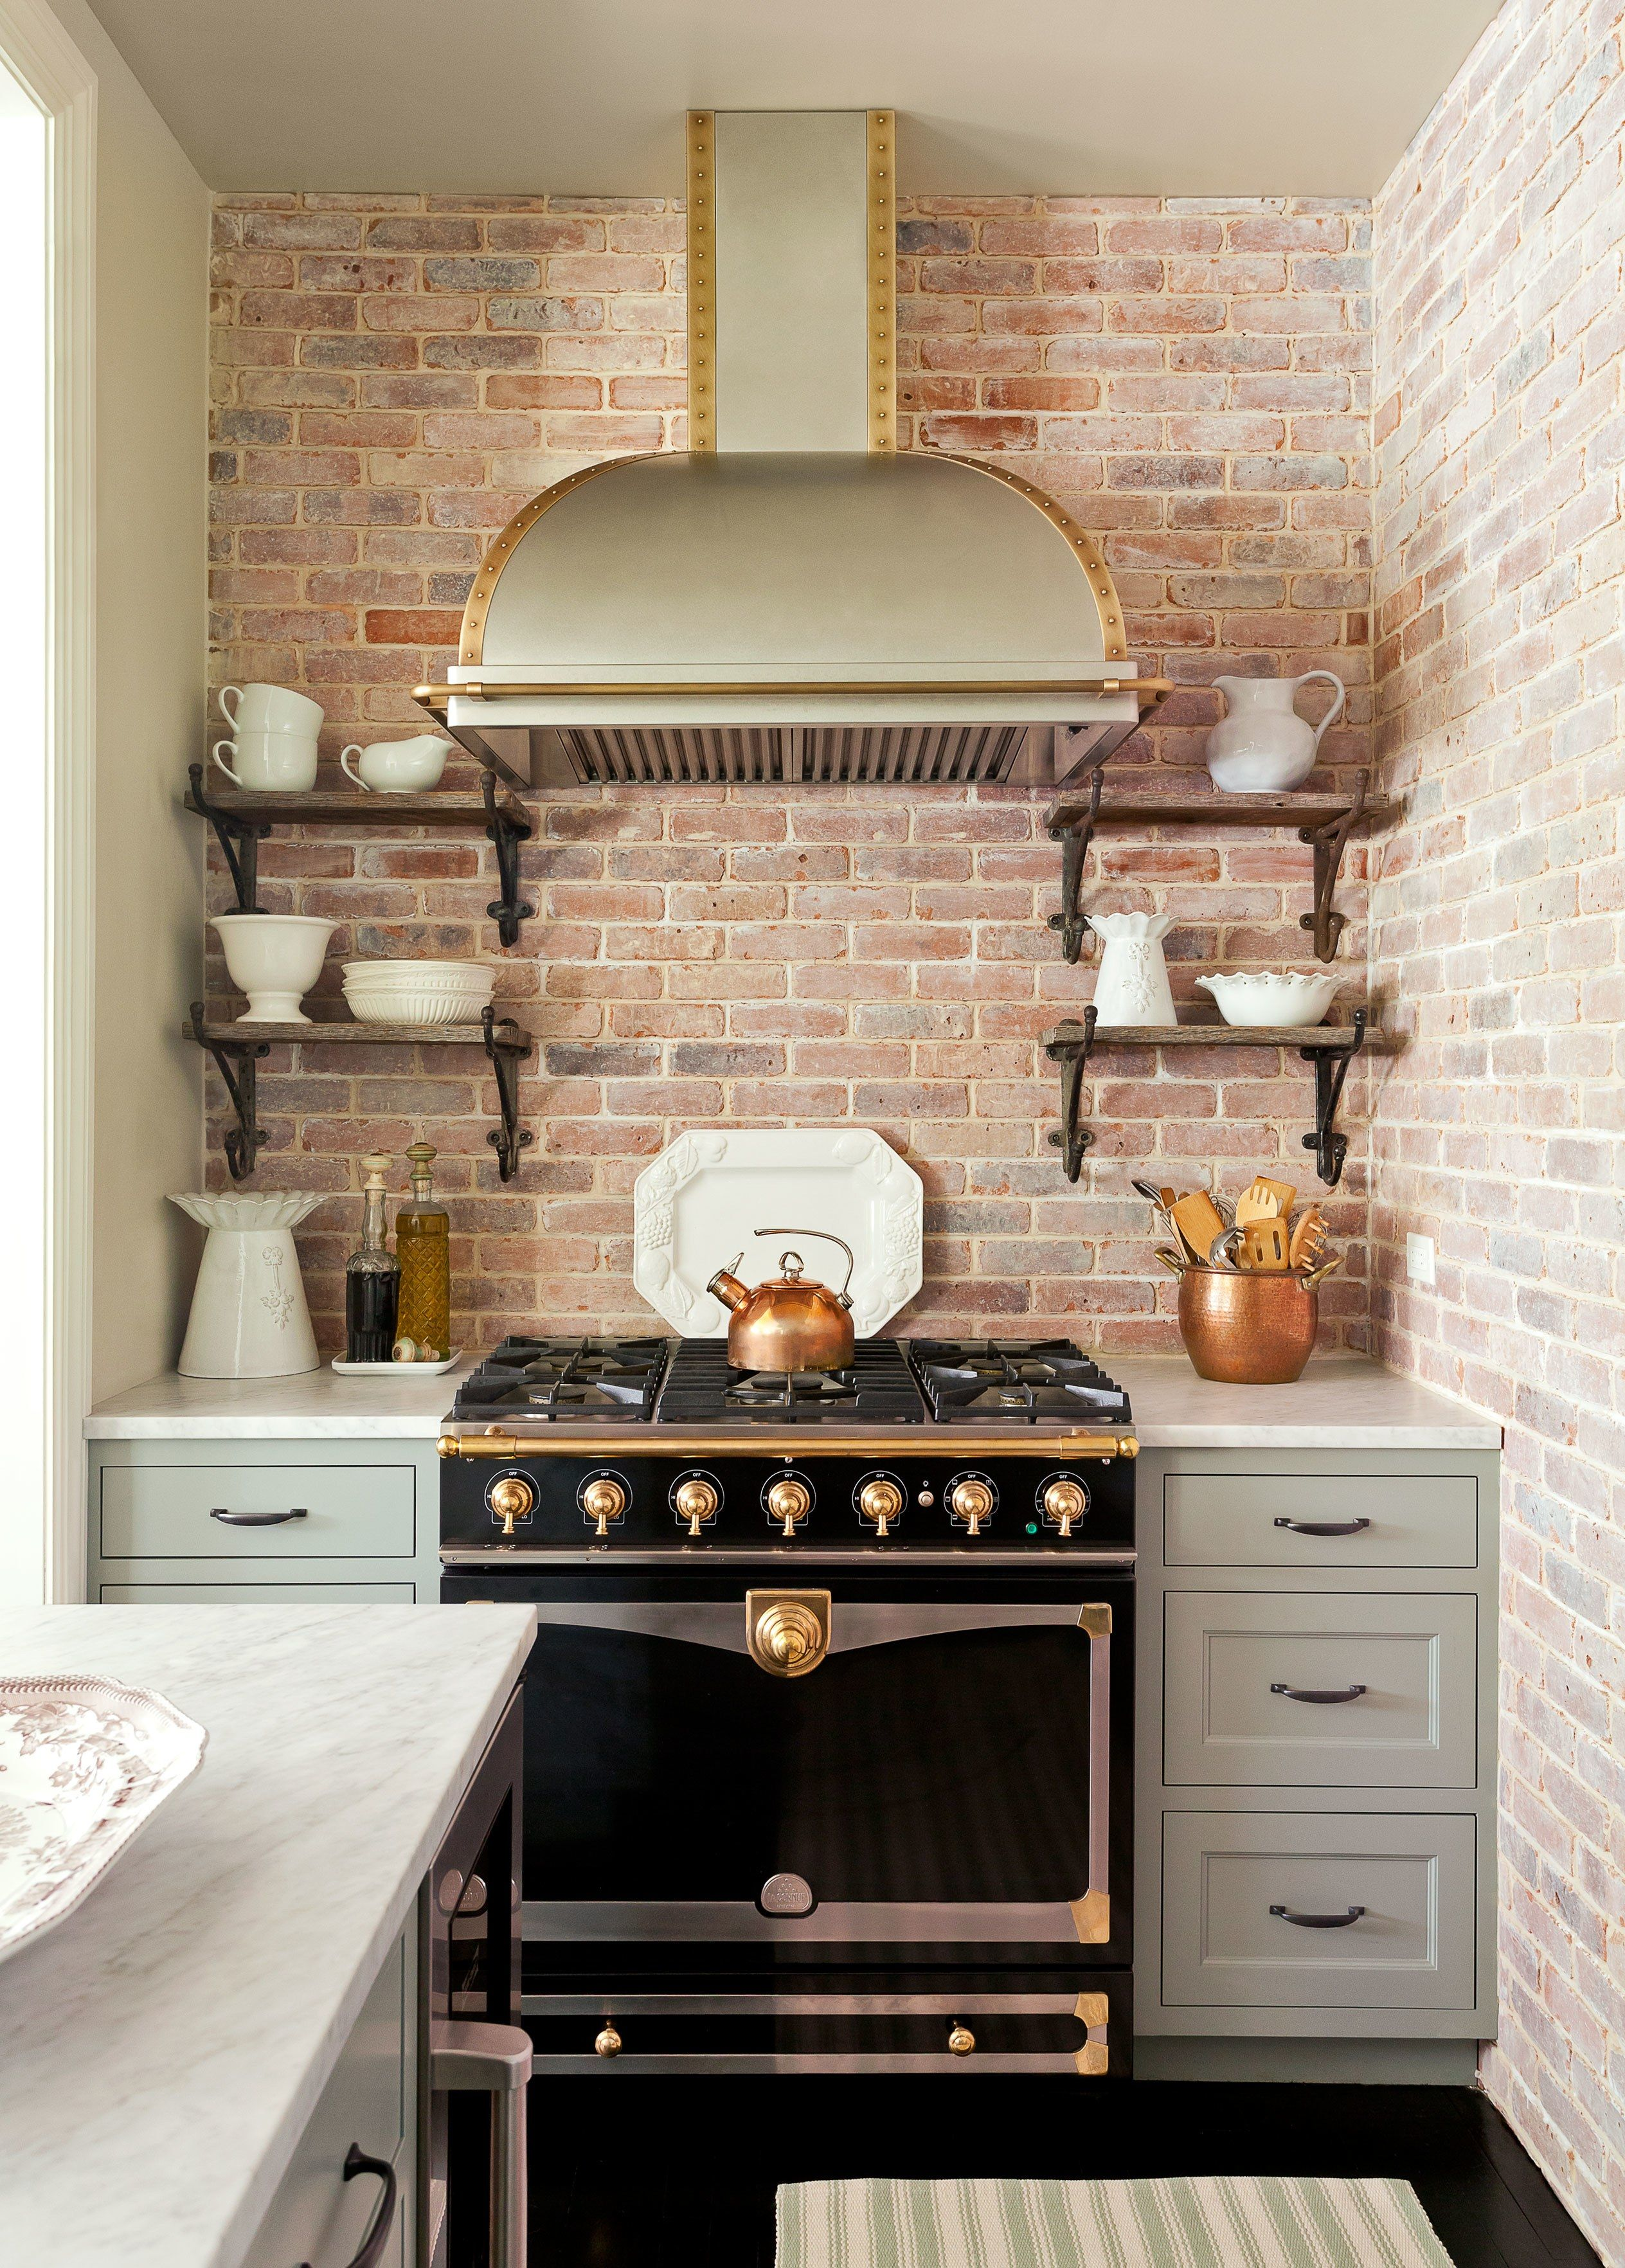 5 Tips to Make Your Small Kitchen Feel Large | Cocinas